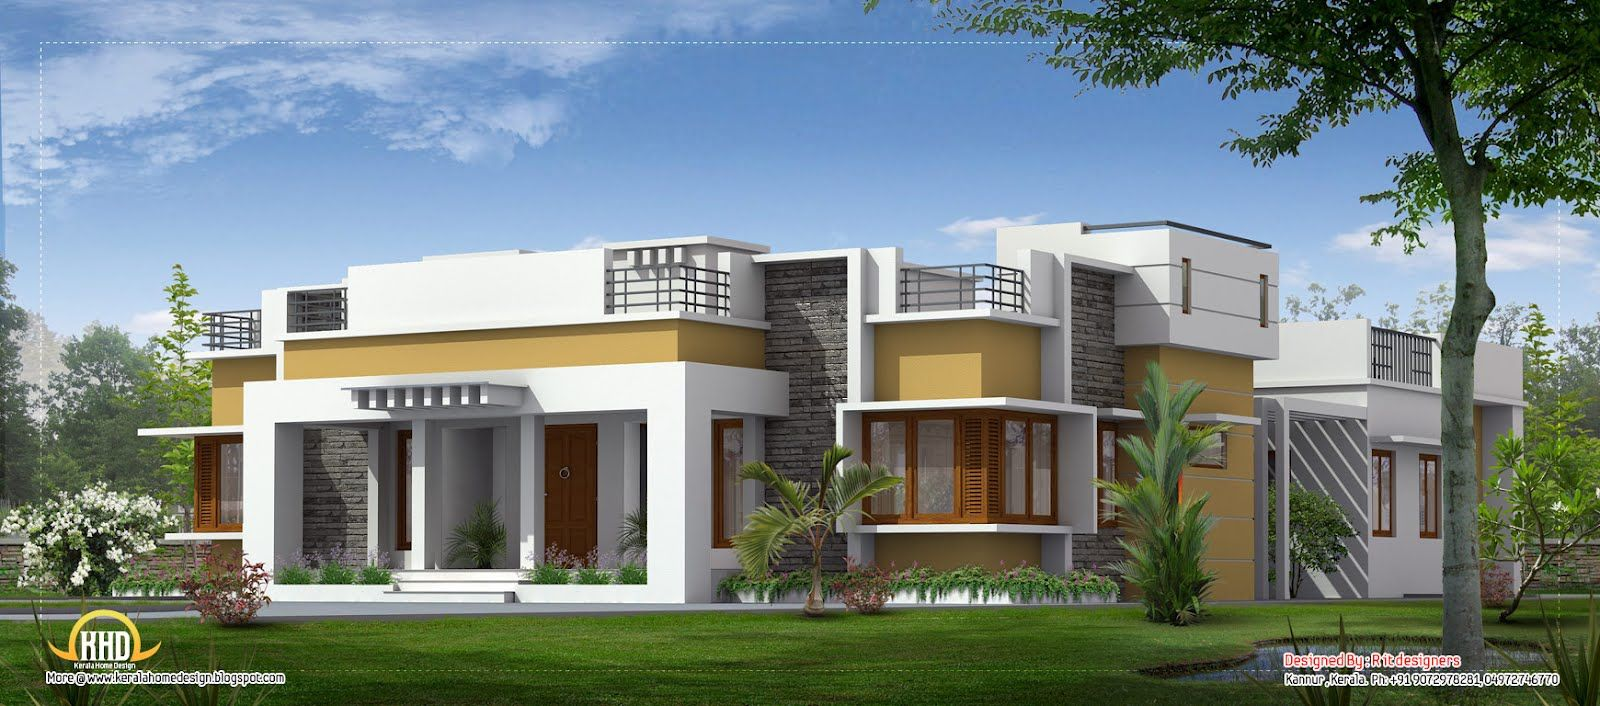 Beautiful single floor home 2910 sq ft design floor for Design a building